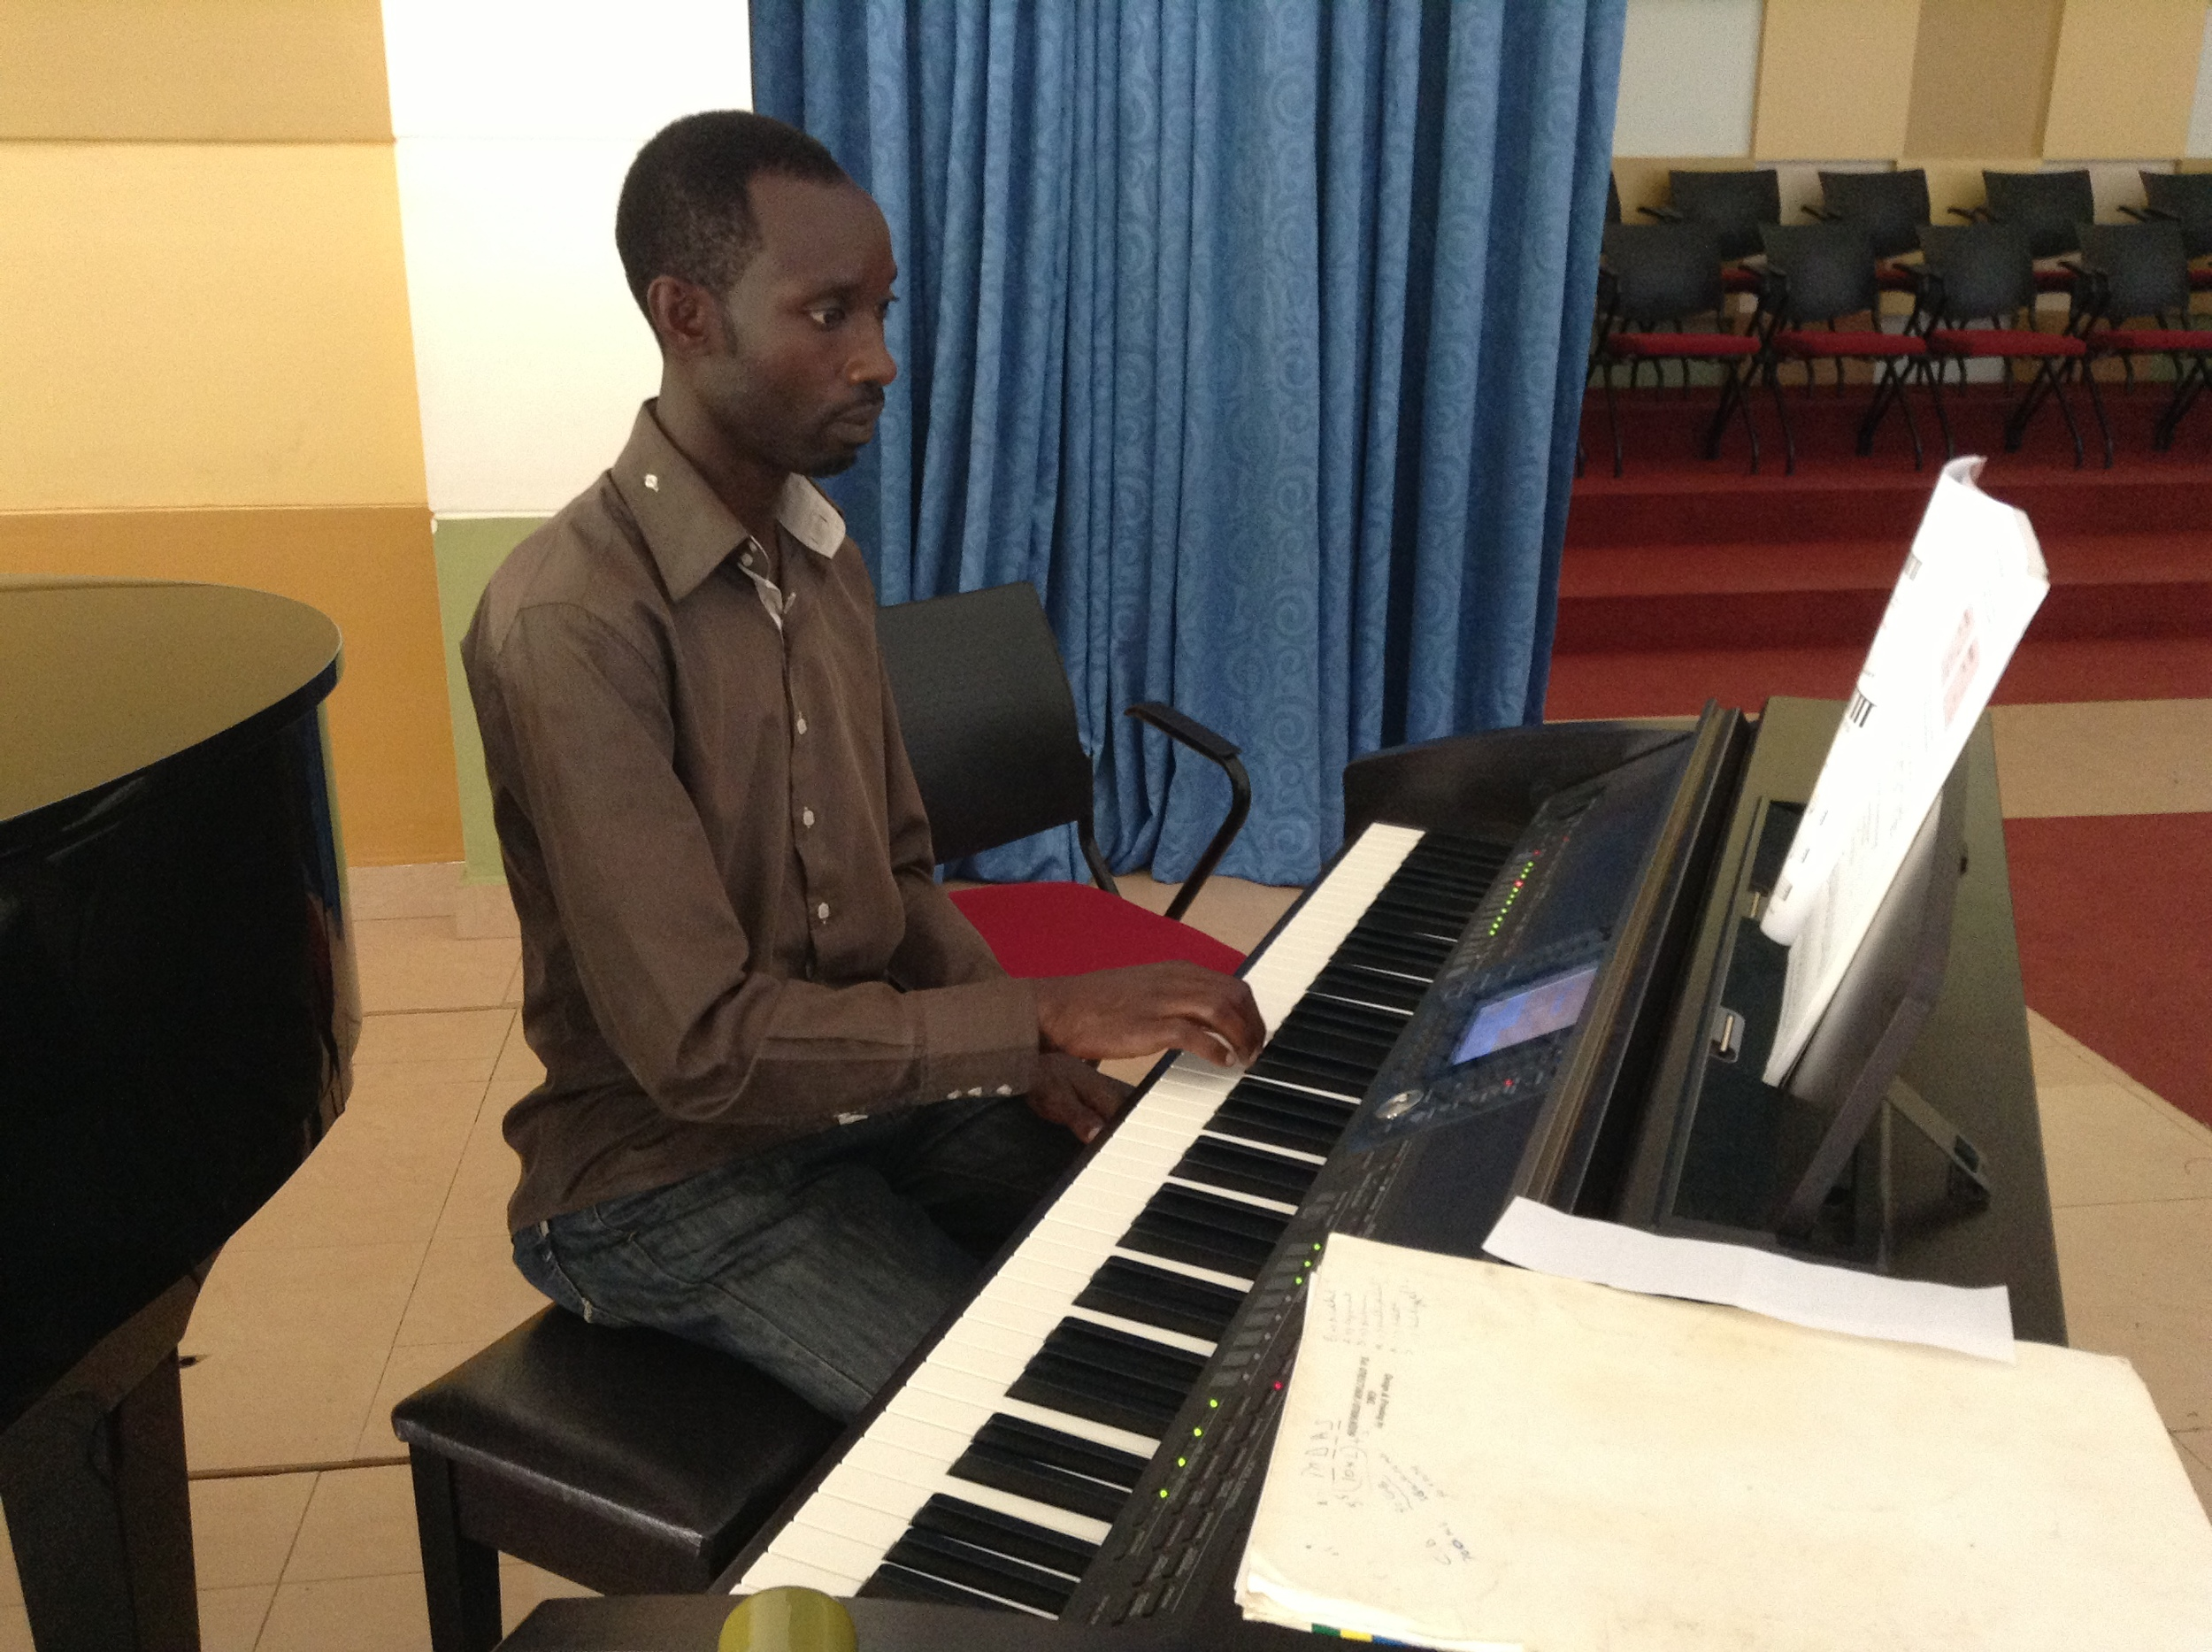 Clement is a new piano student this semester. Here in his second lesson he is learning how to play the melody of Beethoven's 5th Symphony.